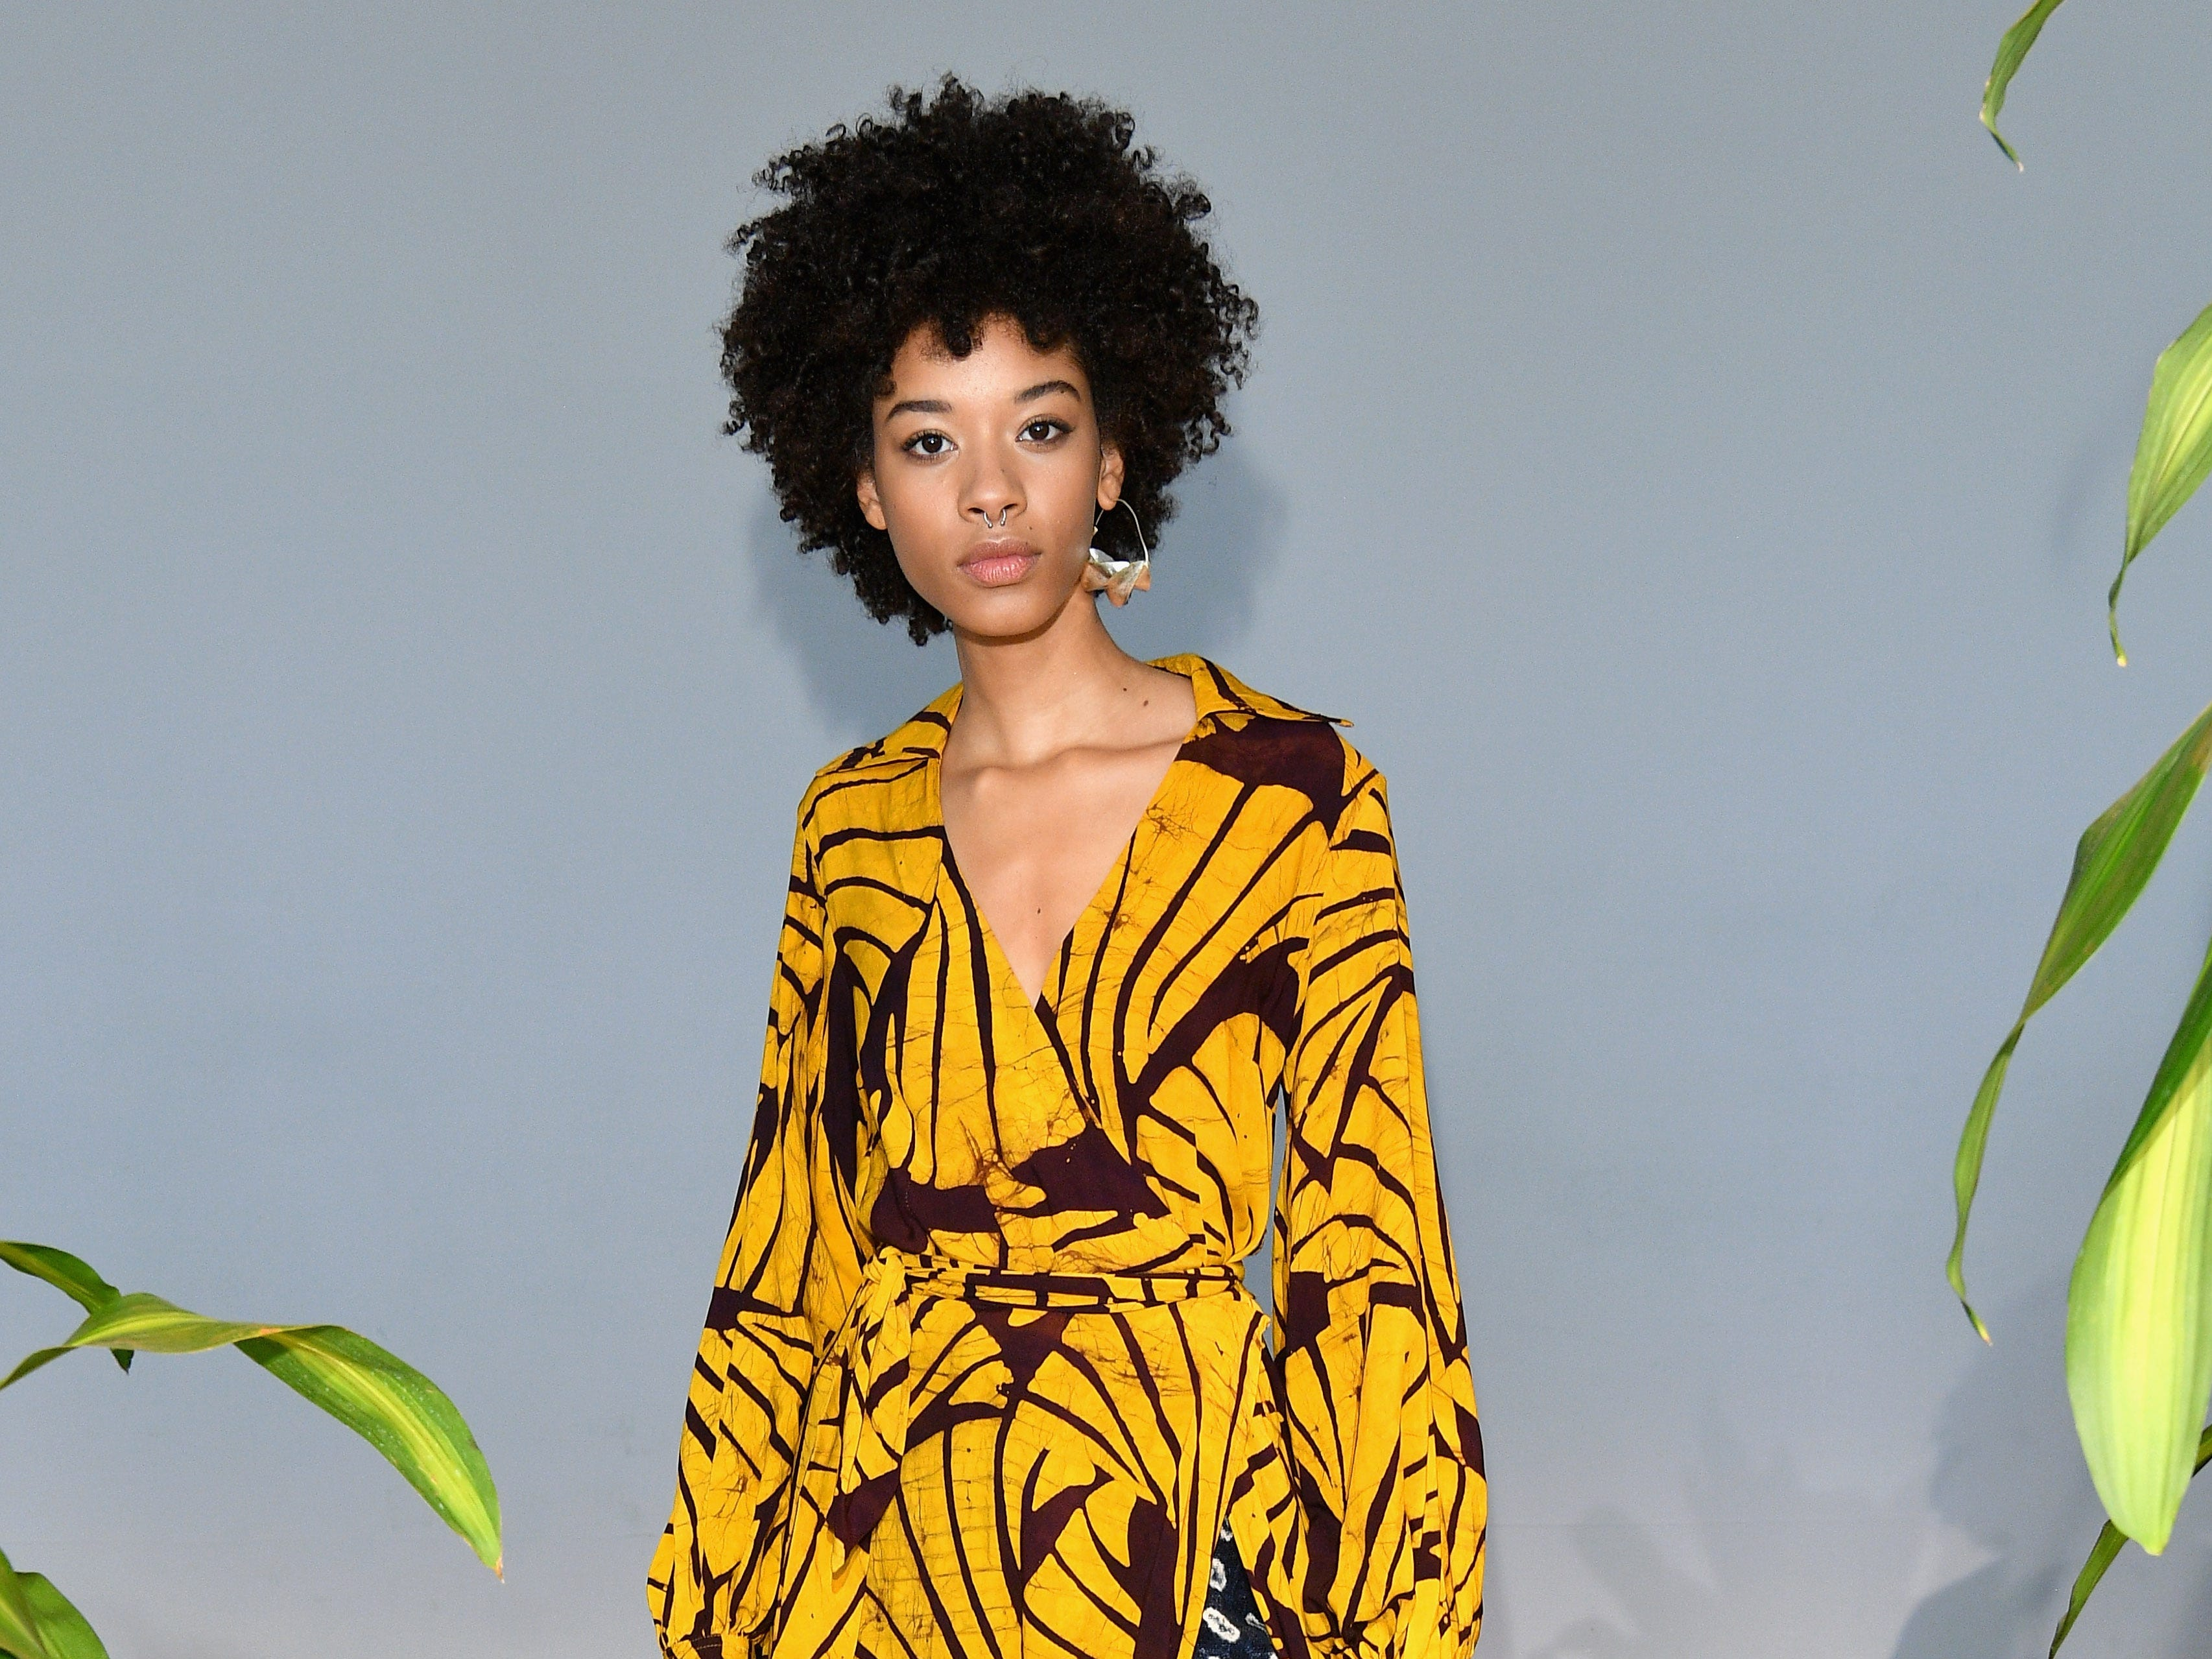 Studio 189 diverted from the triangle theme pattern for this look, which layered a canary-yellow printed wrap dress over a pair of silky black-and-white pants.